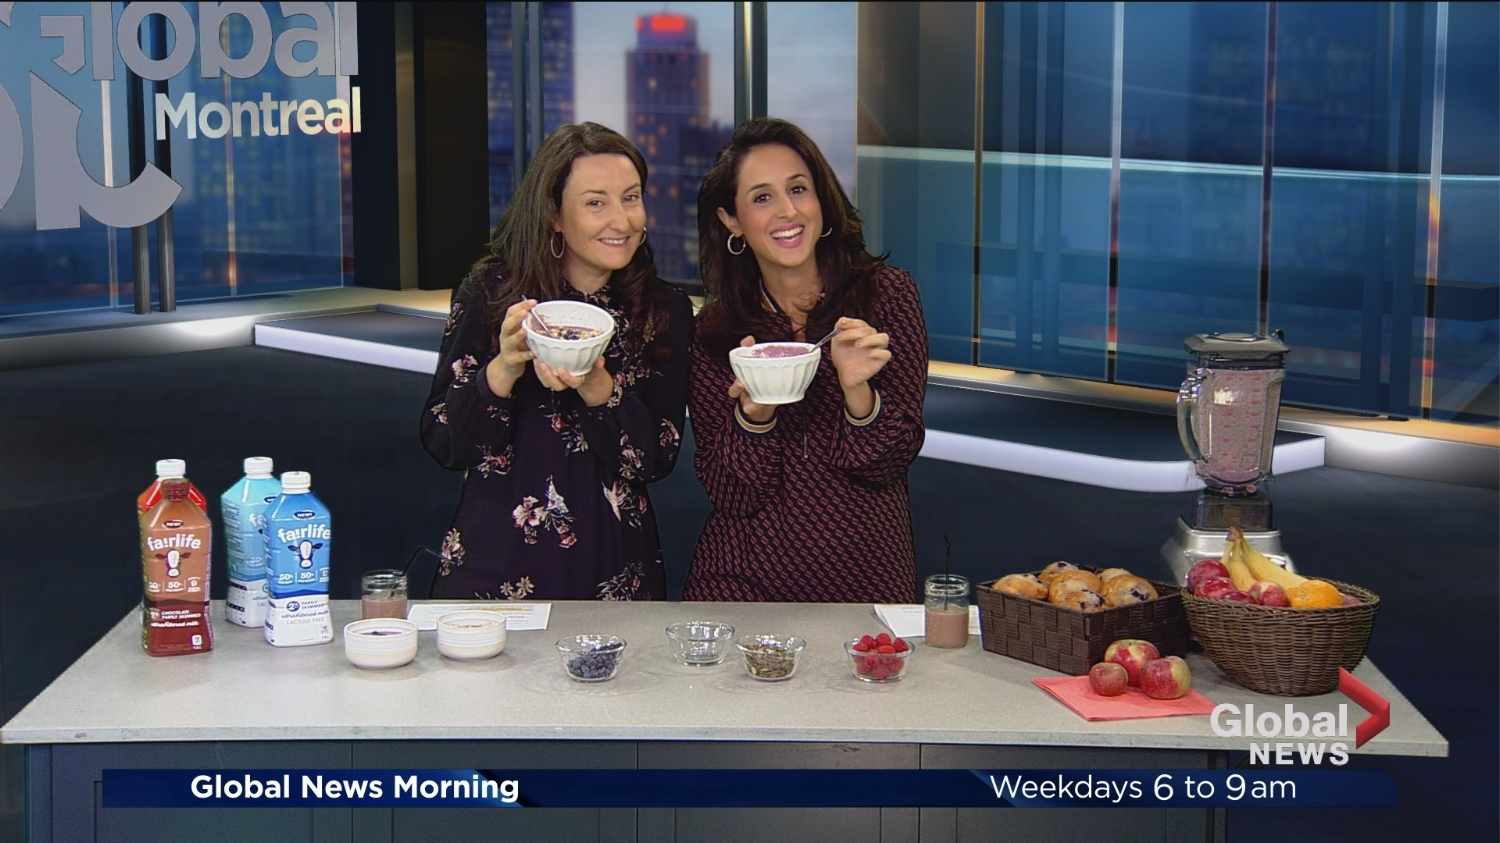 fairlife ultra filtered milk-Smoothie bowl-global Montreal-Jaime Damak-Je suis une maman